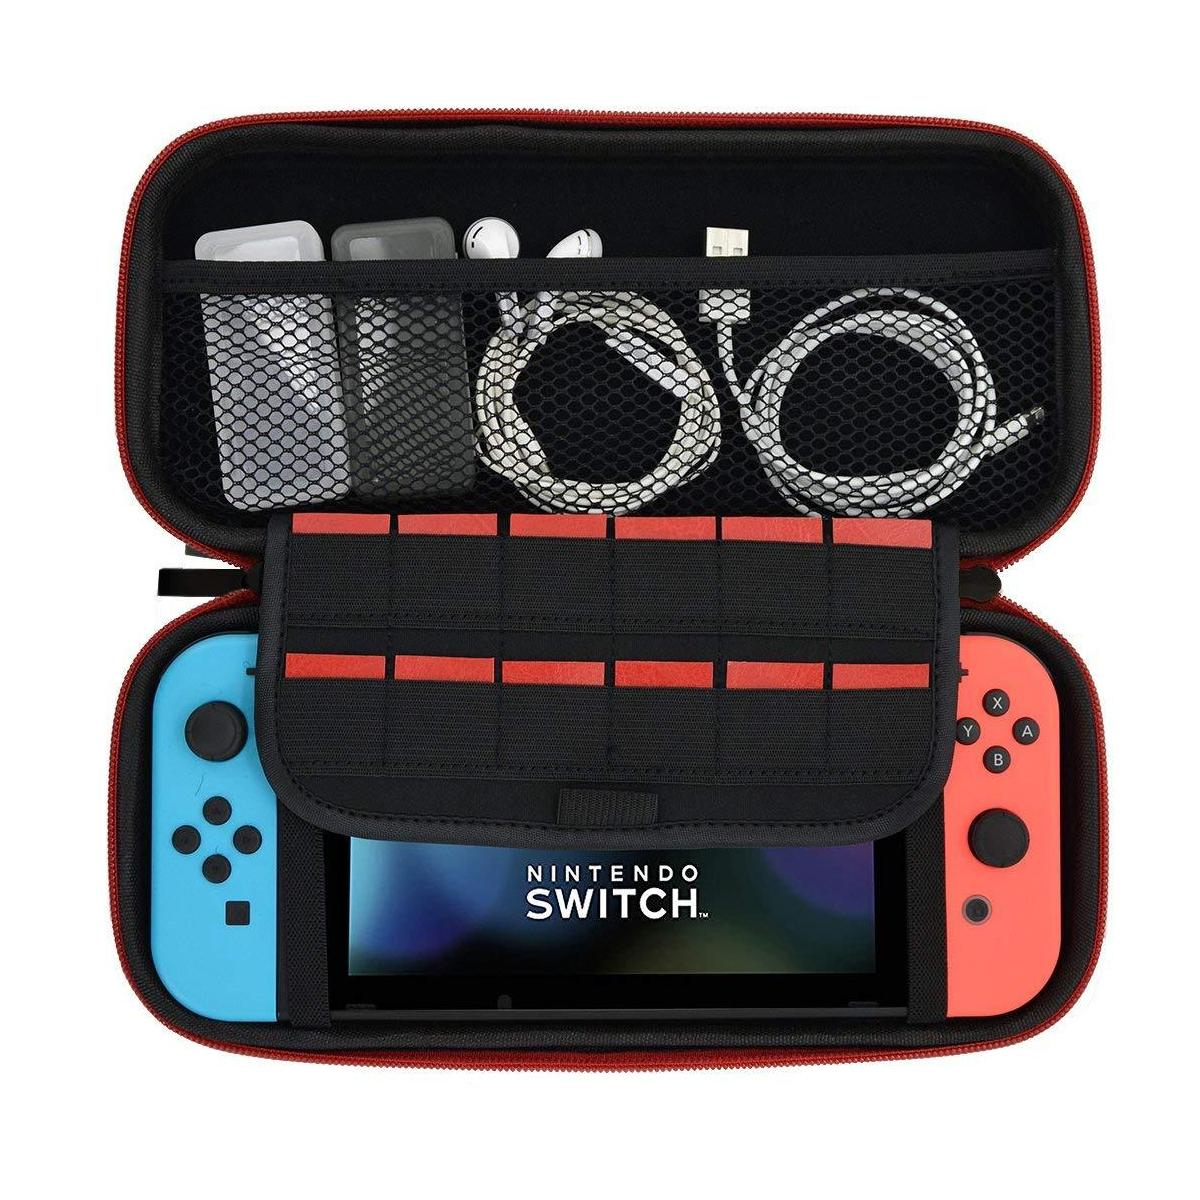 [sg] Nintendo Switch Carrying Travel Case/casing - Available In 3 Colours - Black/blue/orange - Eva Pouch - Protective Bag With Compartments To Safekeep Accessories - Local Sg Seller Fast Delivery By Premium Mobile Accessories.